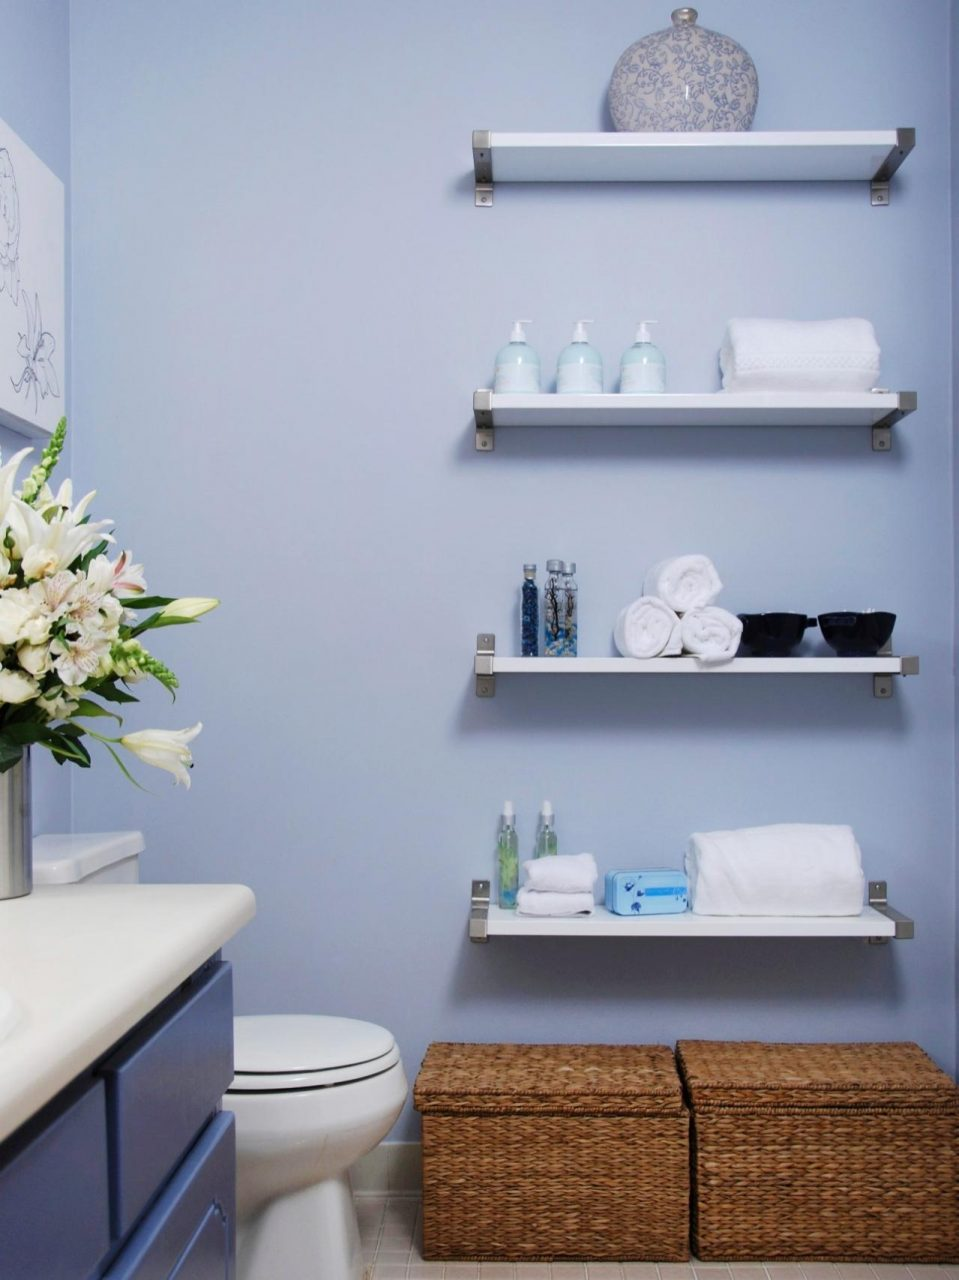 12 Ways To Decorate With Floating Shelves Hgtvs Decorating